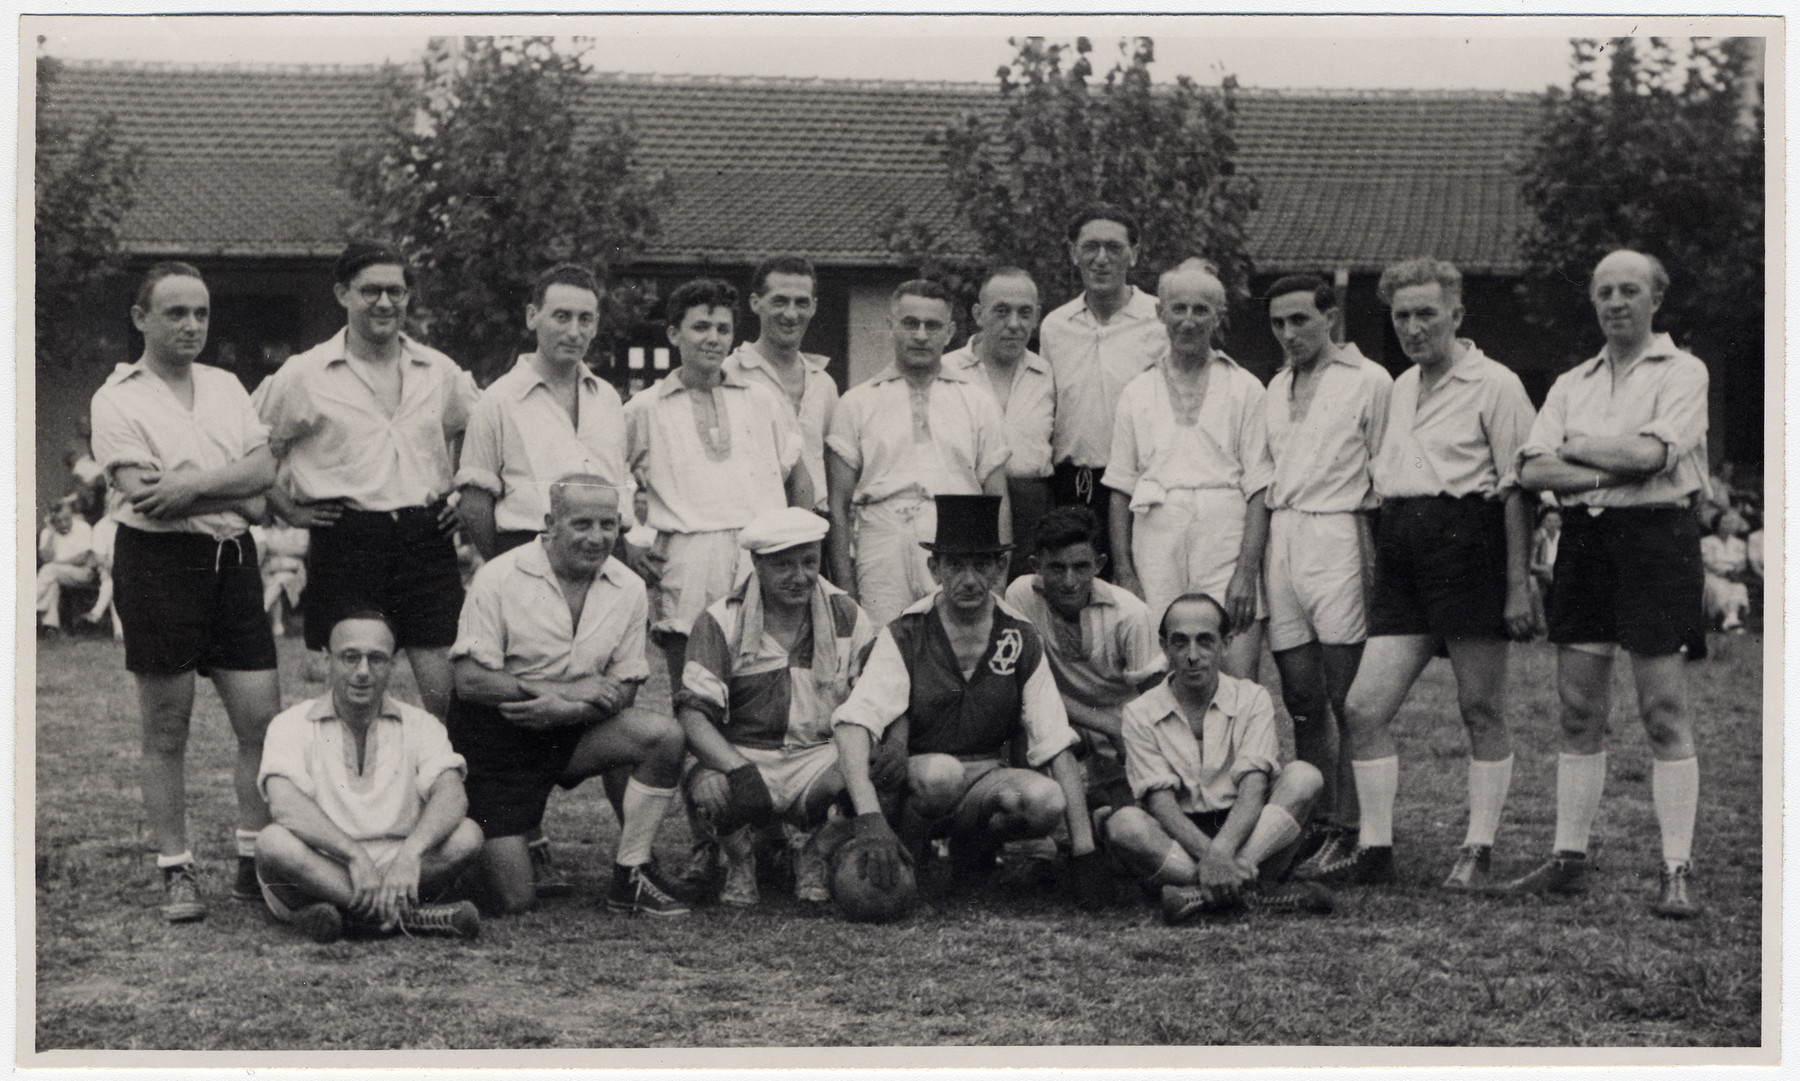 Group portrait of members of a Jewish soccer team in Shanghai.